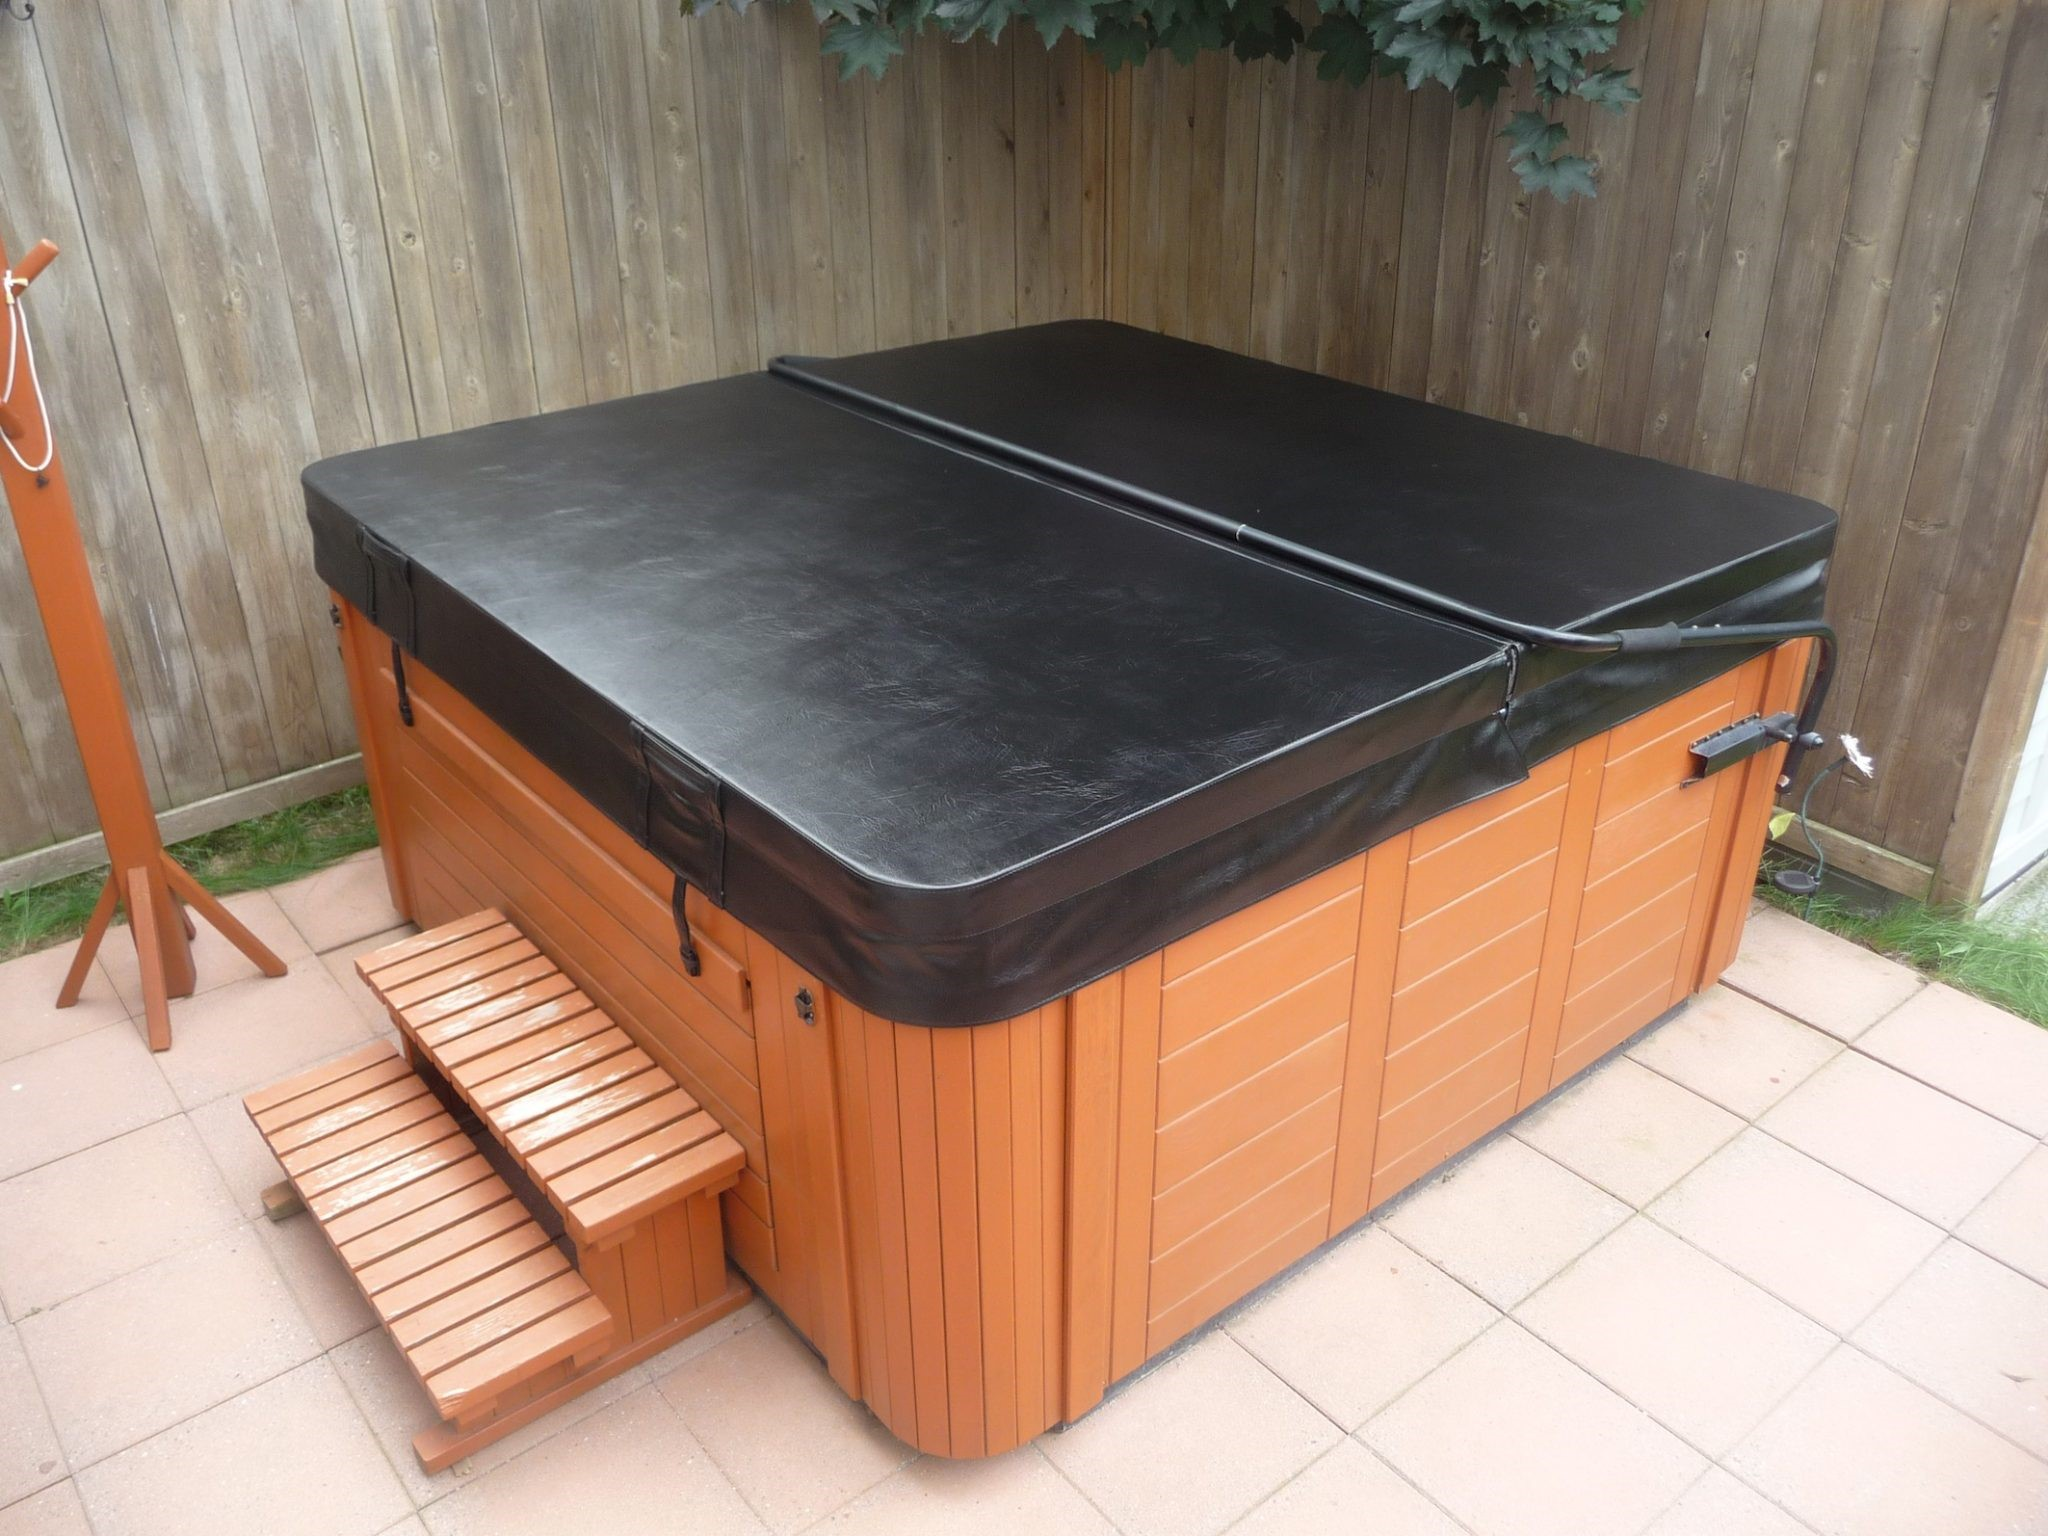 This Hot Tub Cover Has Become A Household Name In Most Part Of The Civilized World It S One Million That Great Feel Luxury With